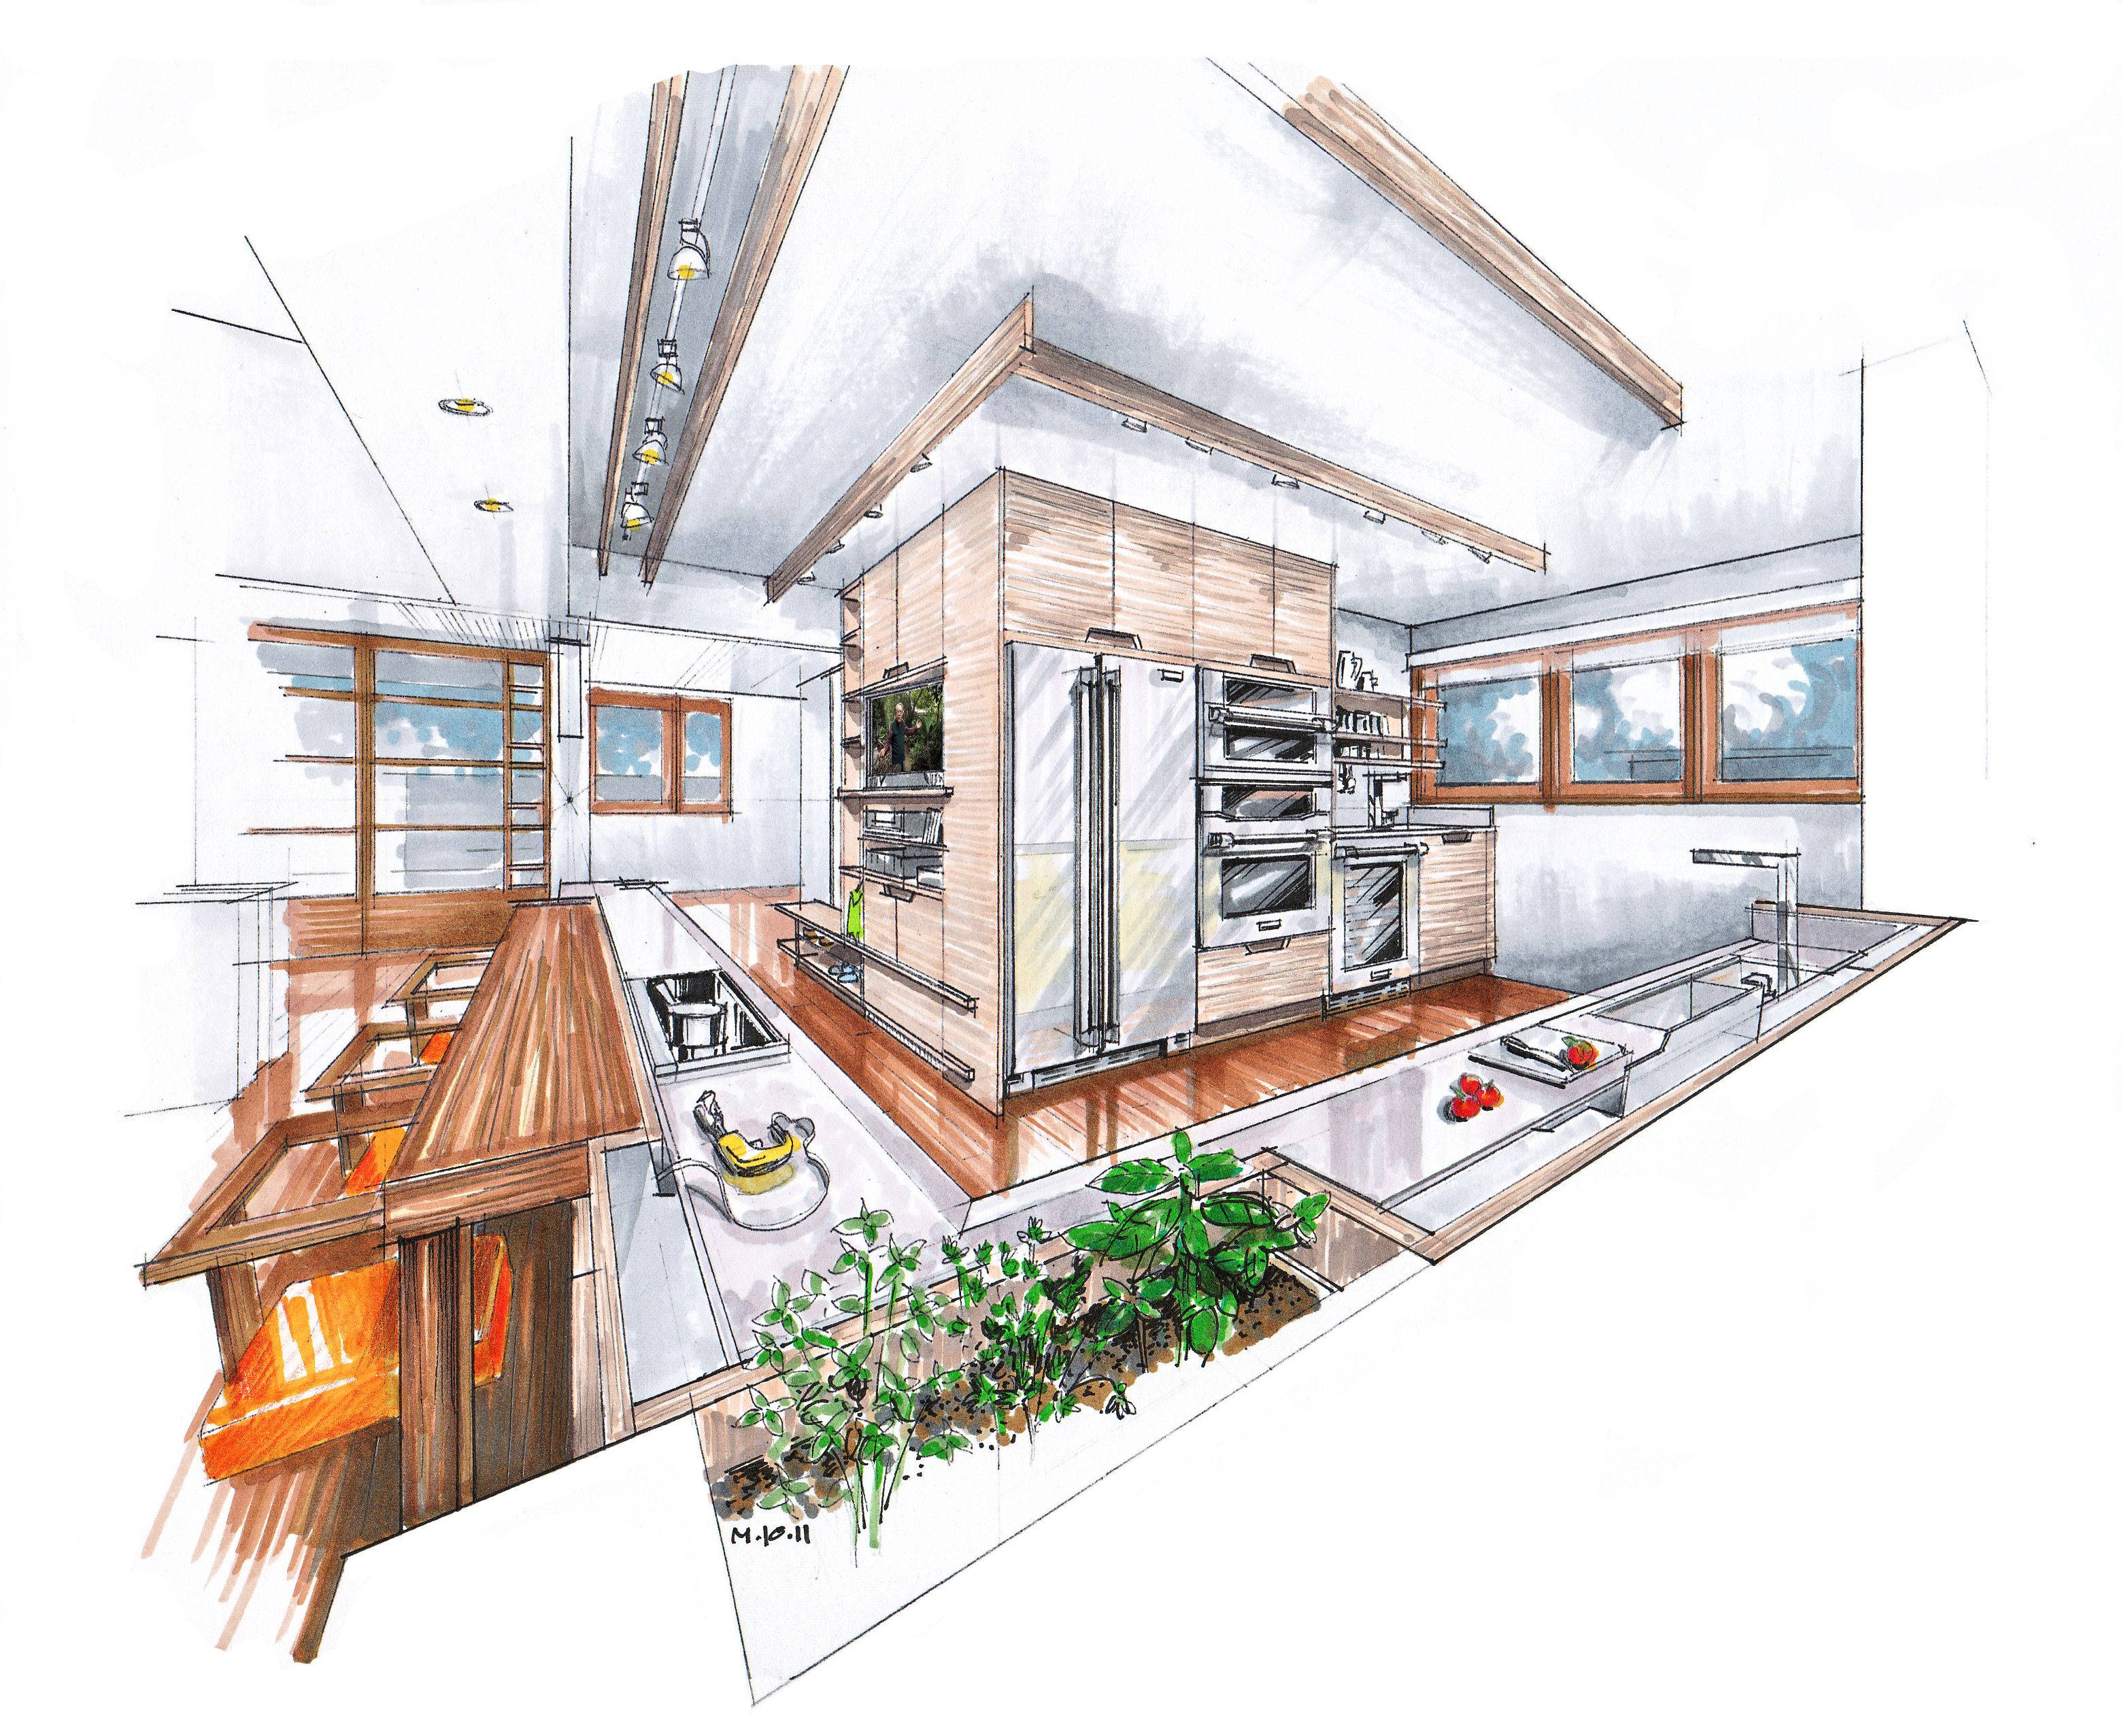 Rendering by mick ricereto bocetos dise o pinterest for Bocetos de disenos de interiores